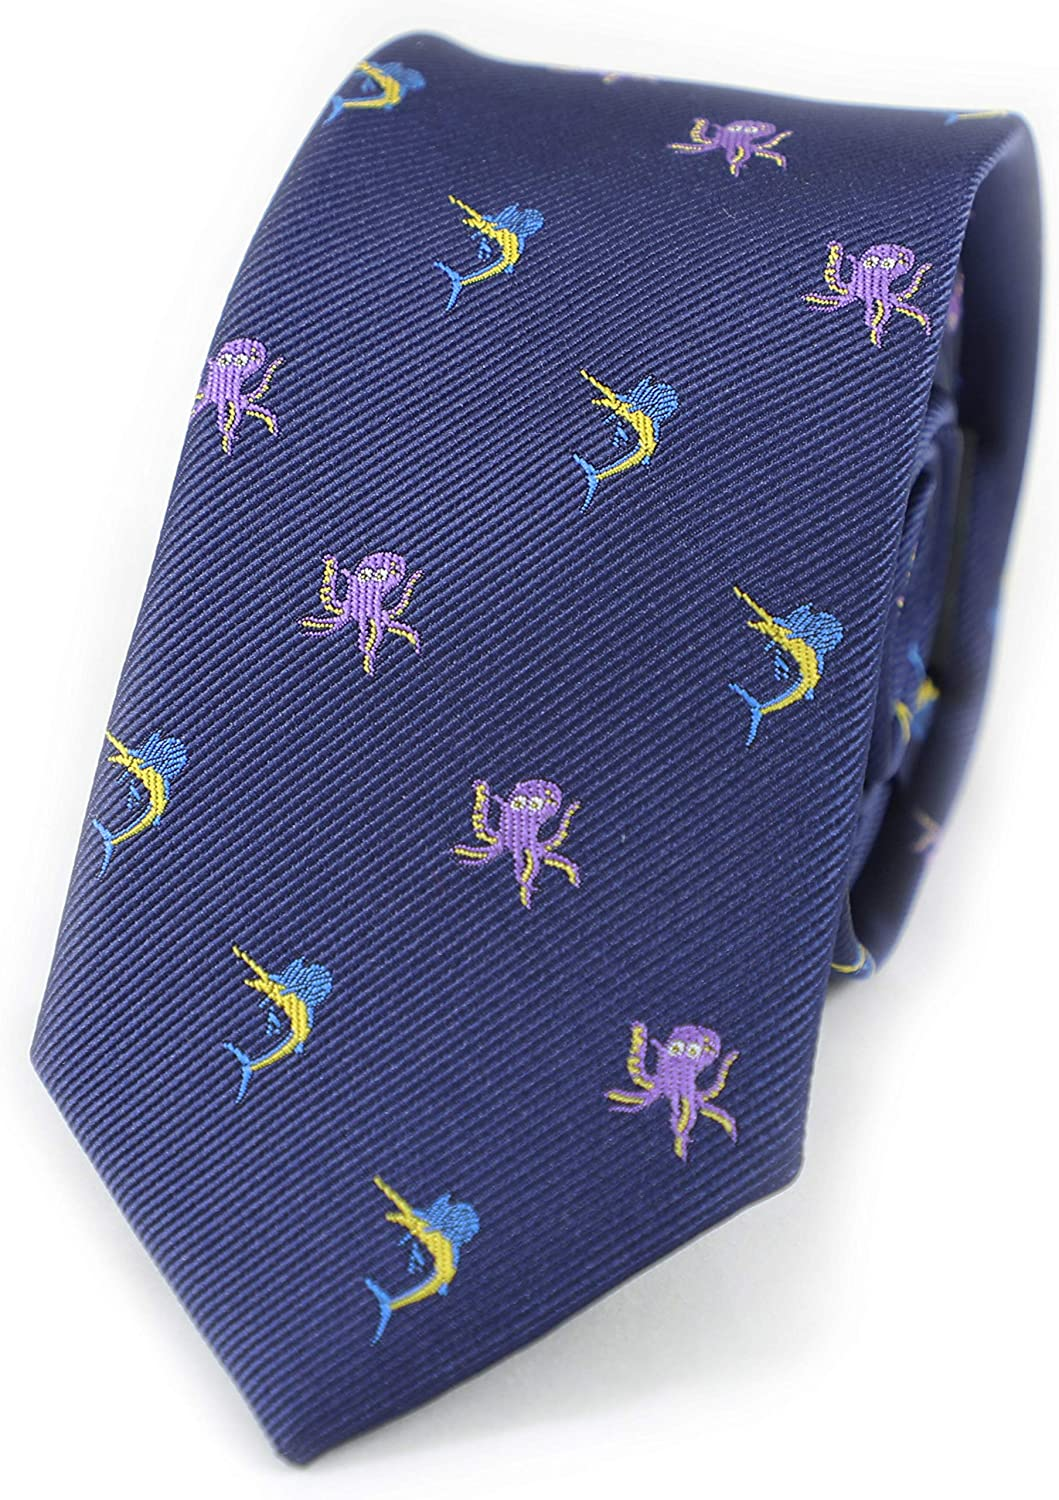 MENDEPOT Sailfish And Octopus Tie With Box Sea Animal Marlin And Octopus Navy Necktie